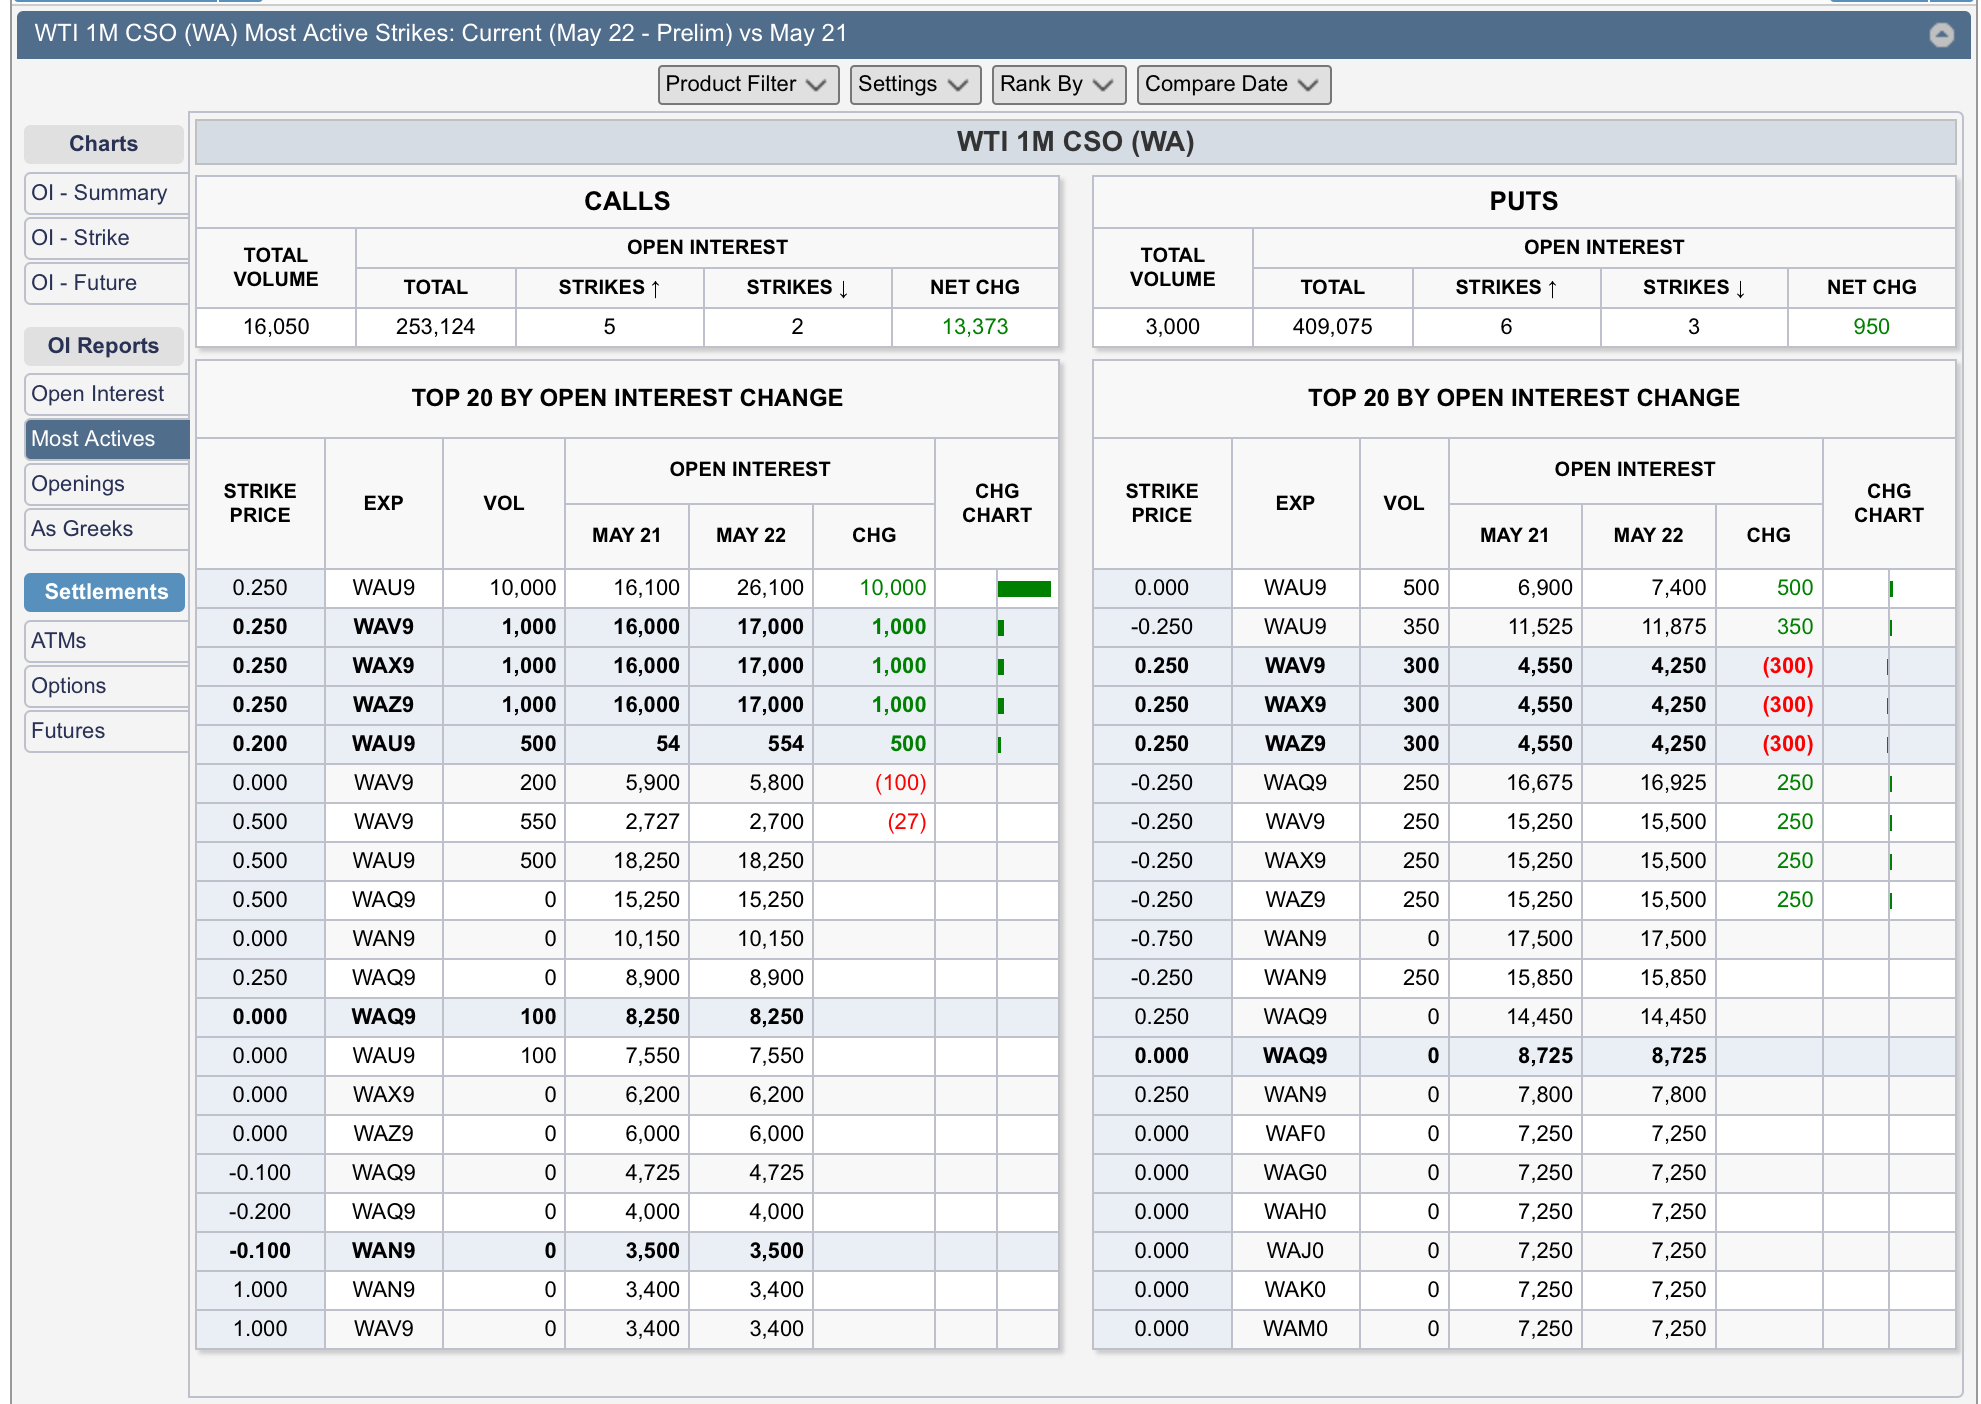 WTI spread options are active    - Commodity Research Group